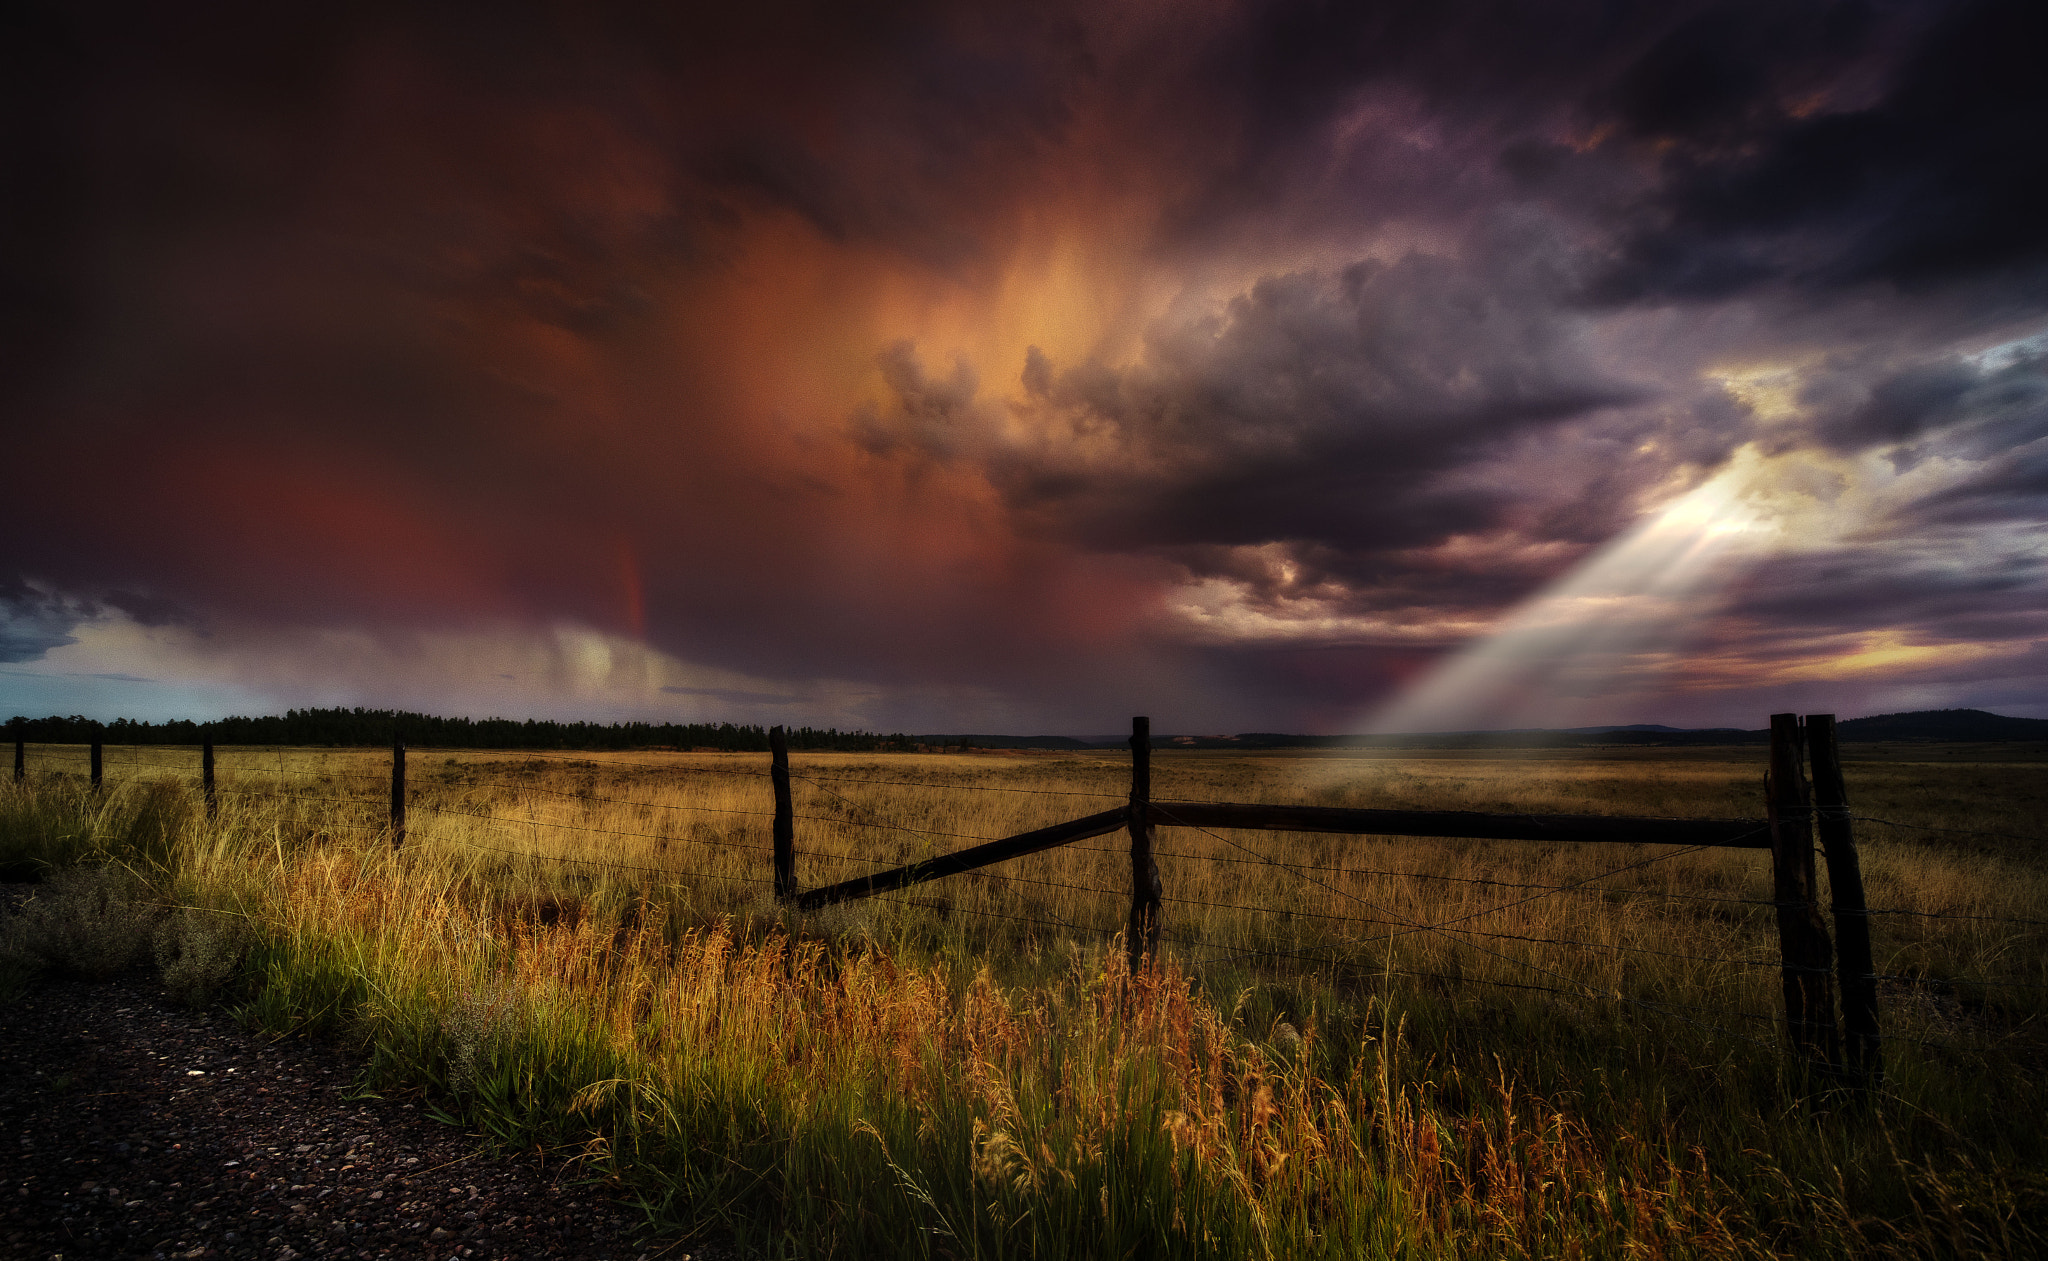 Photograph stormy atmosphere by Stefan Thaler on 500px